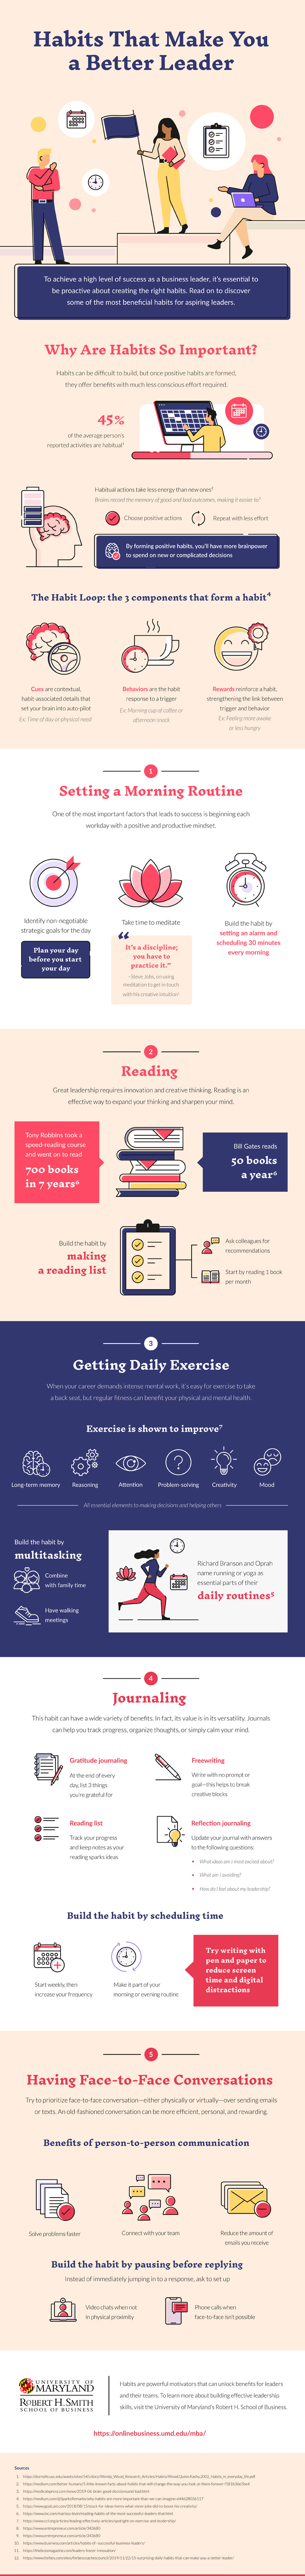 An infographic about the top habits of top leaders in business by the University of Maryland's Robert H. Smith School of Business.